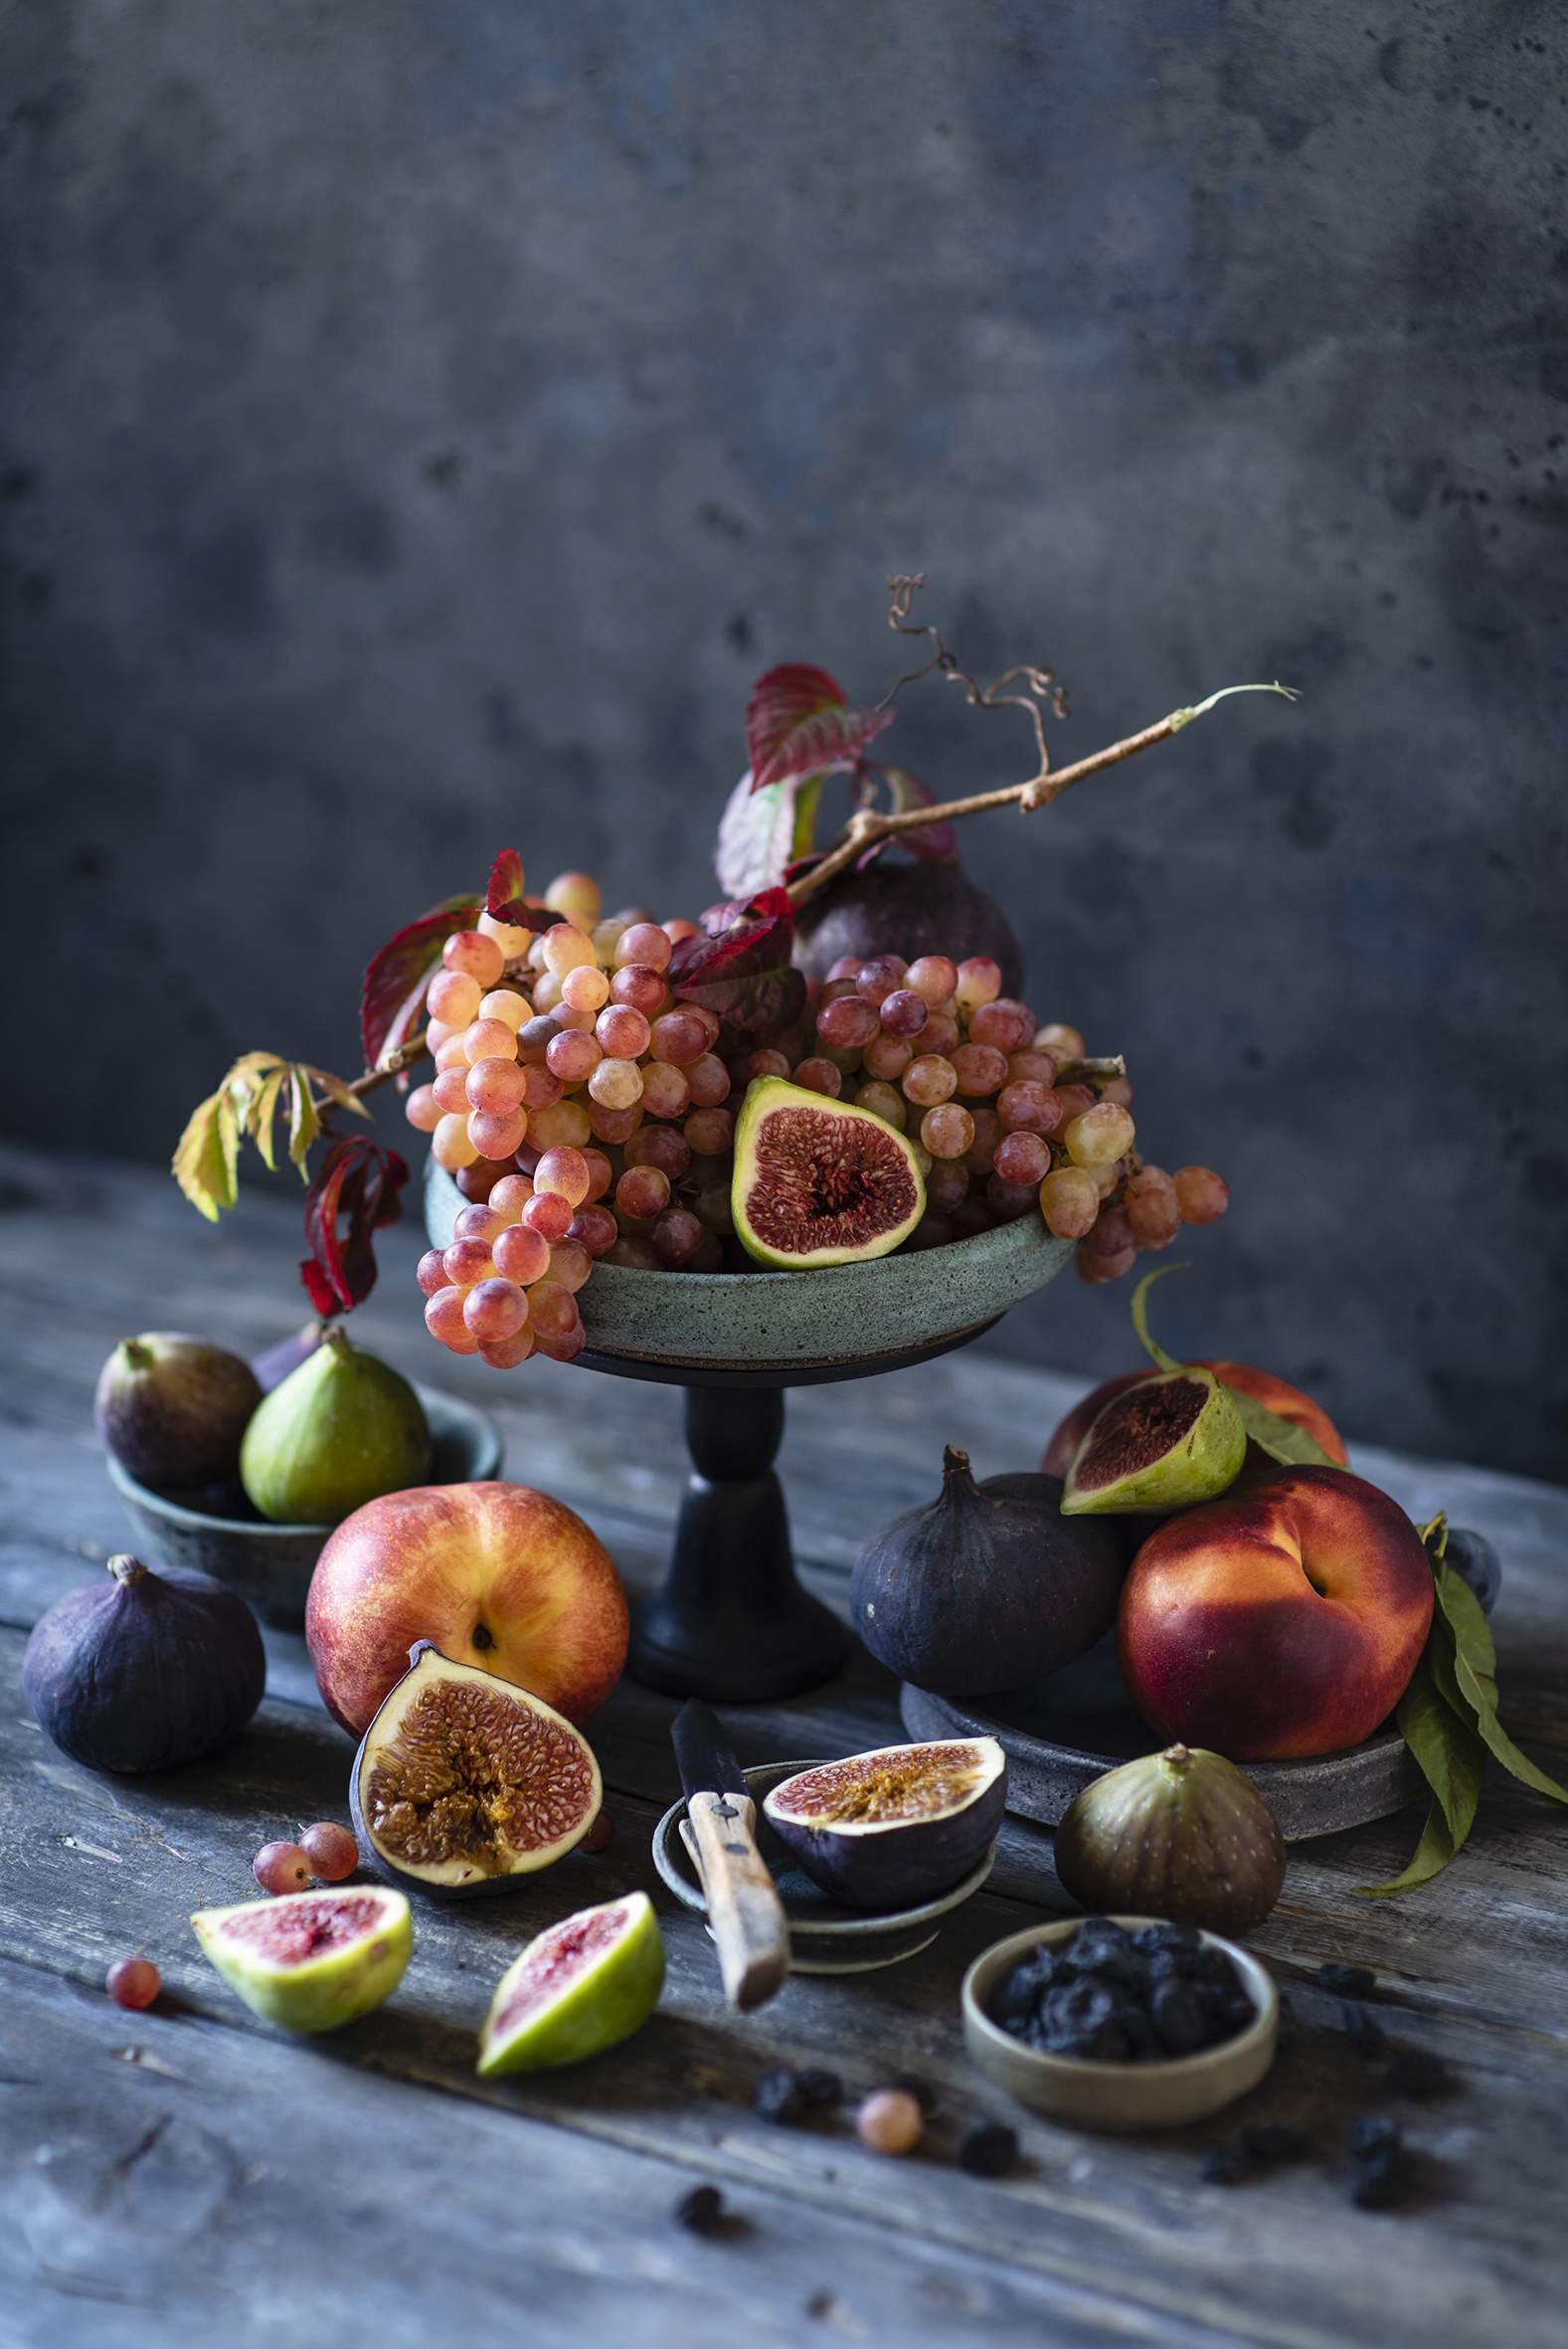 Images figs Grapes Peaches Blueberries Food Fruit Still-life  for Mobile phone Common fig ficus carica